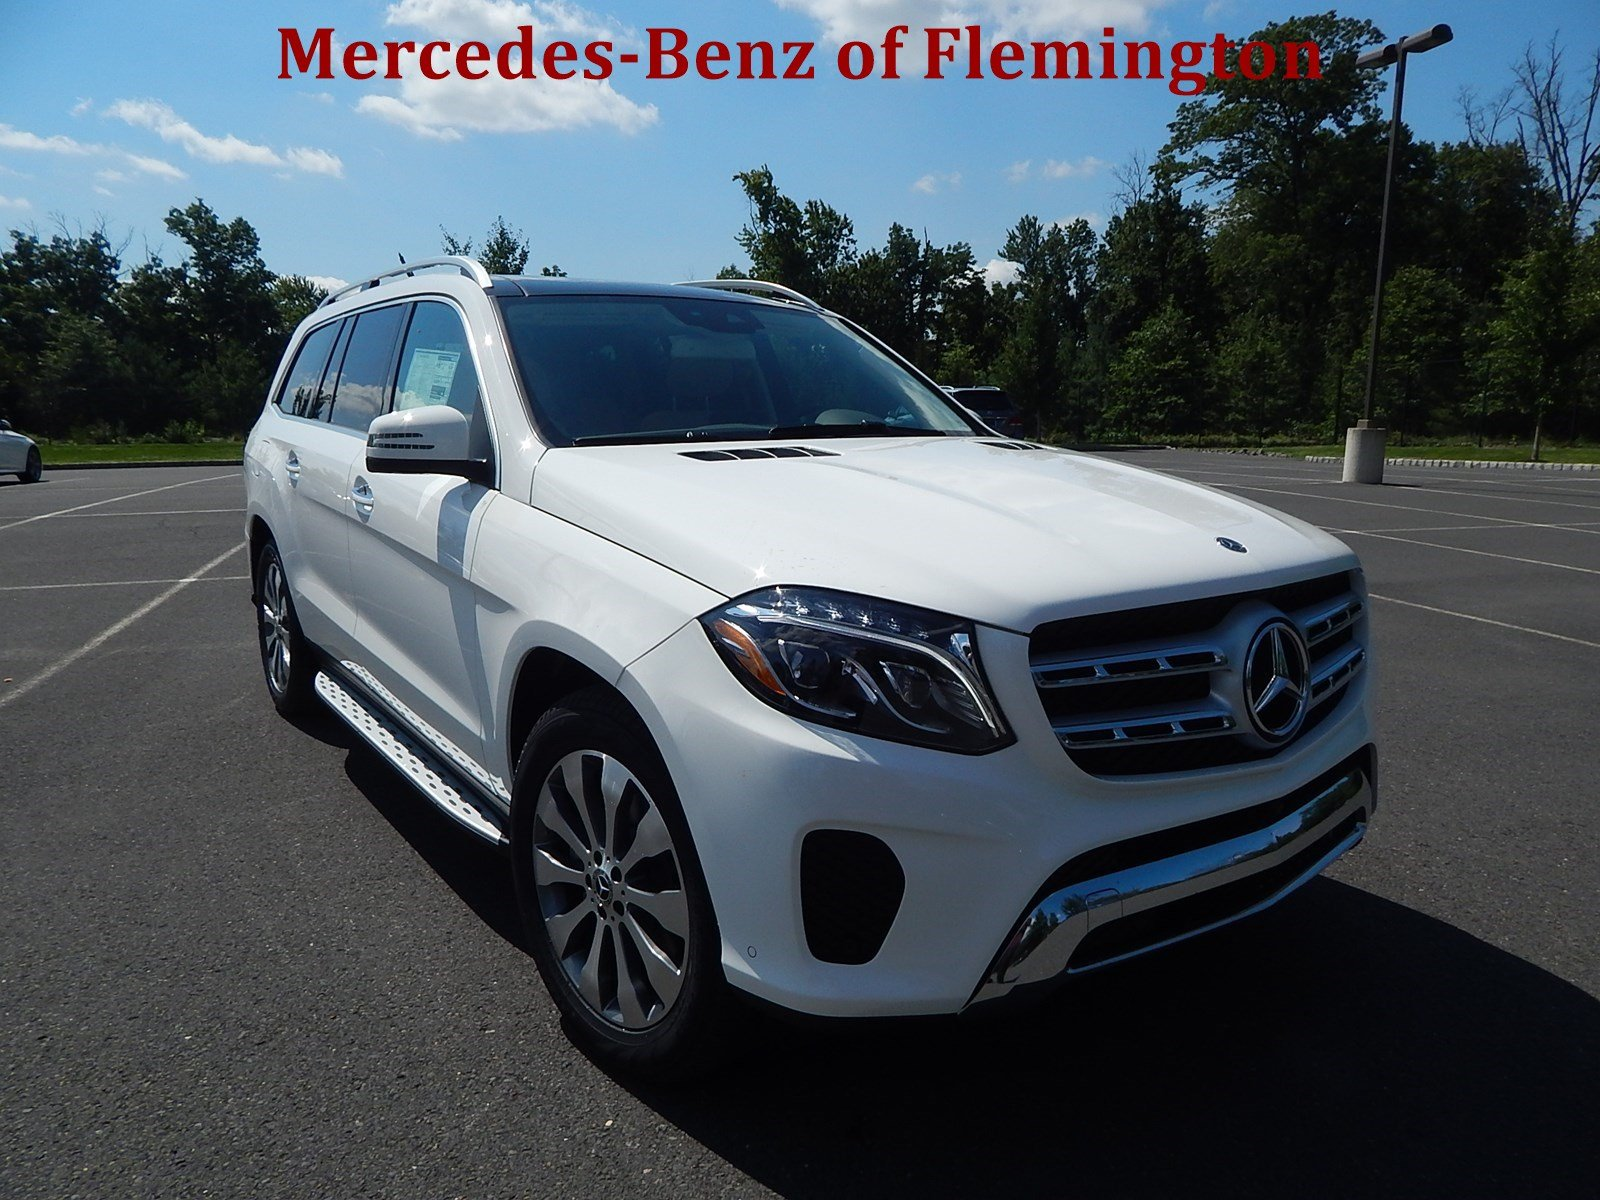 New 2018 mercedes benz gls gls 450 suv in flemington for Mercedes benz of flemington